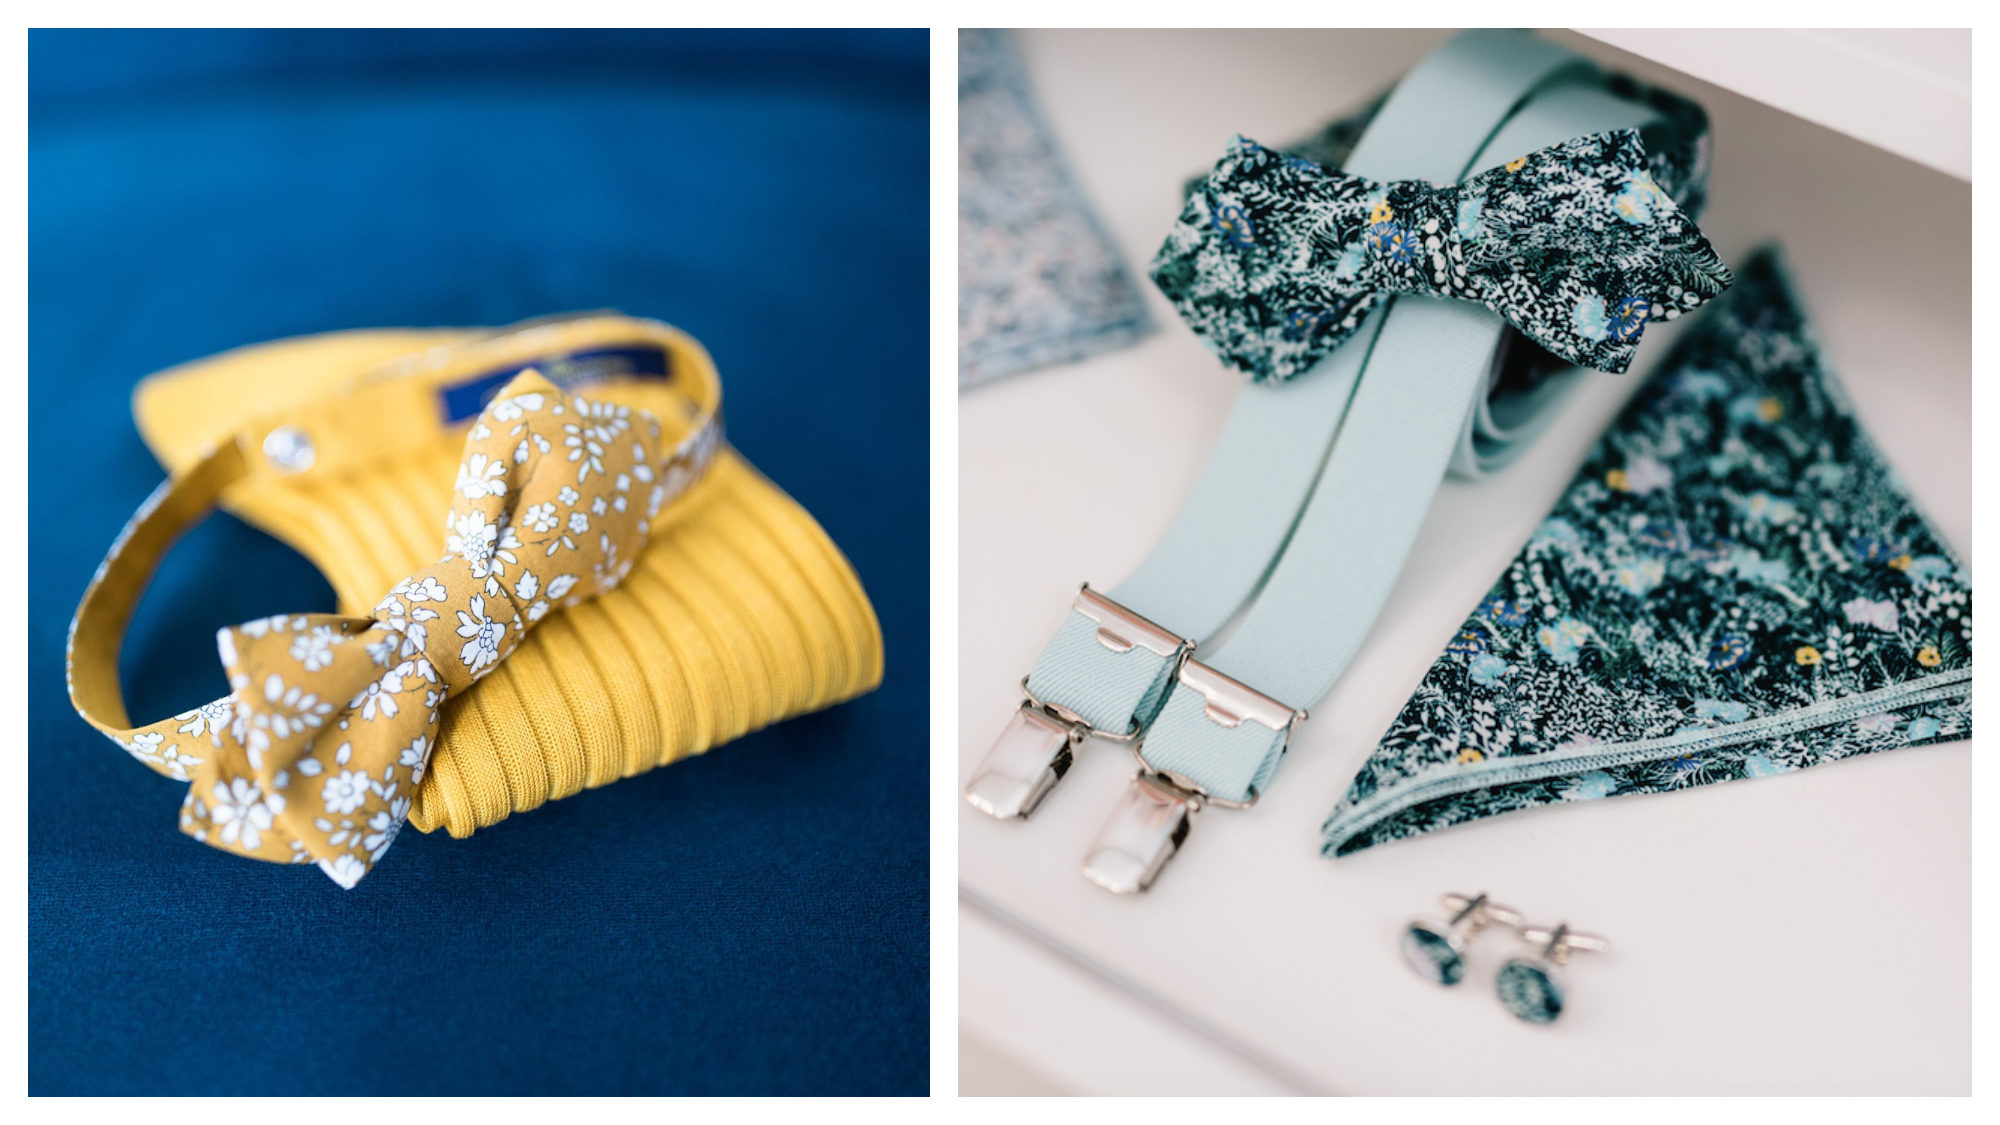 A yellow flower-print bow tie and matching socks on a blue background (left) and mint-green braces, and matching bow tie, cufflinks and handkerchief (right) from French menswear brand Le Colonel Moutarde.